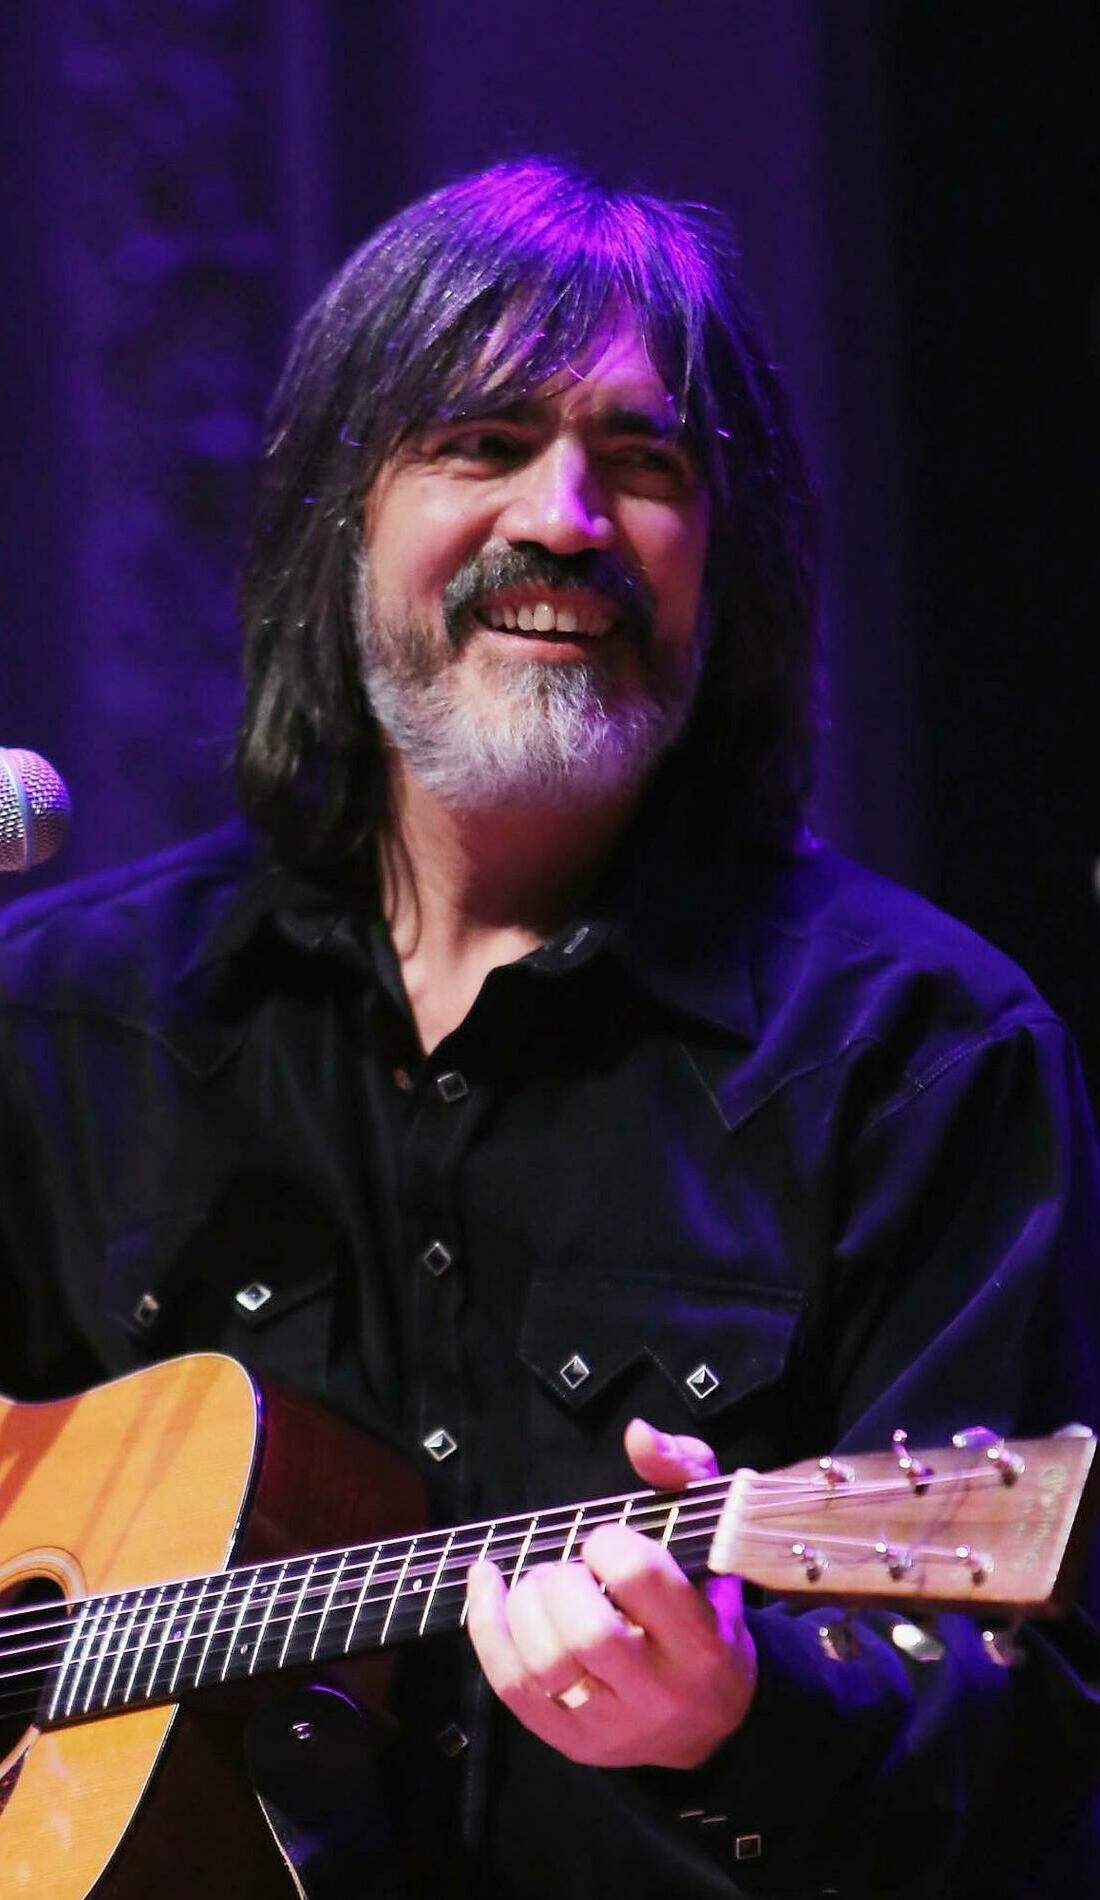 A Larry Campbell live event